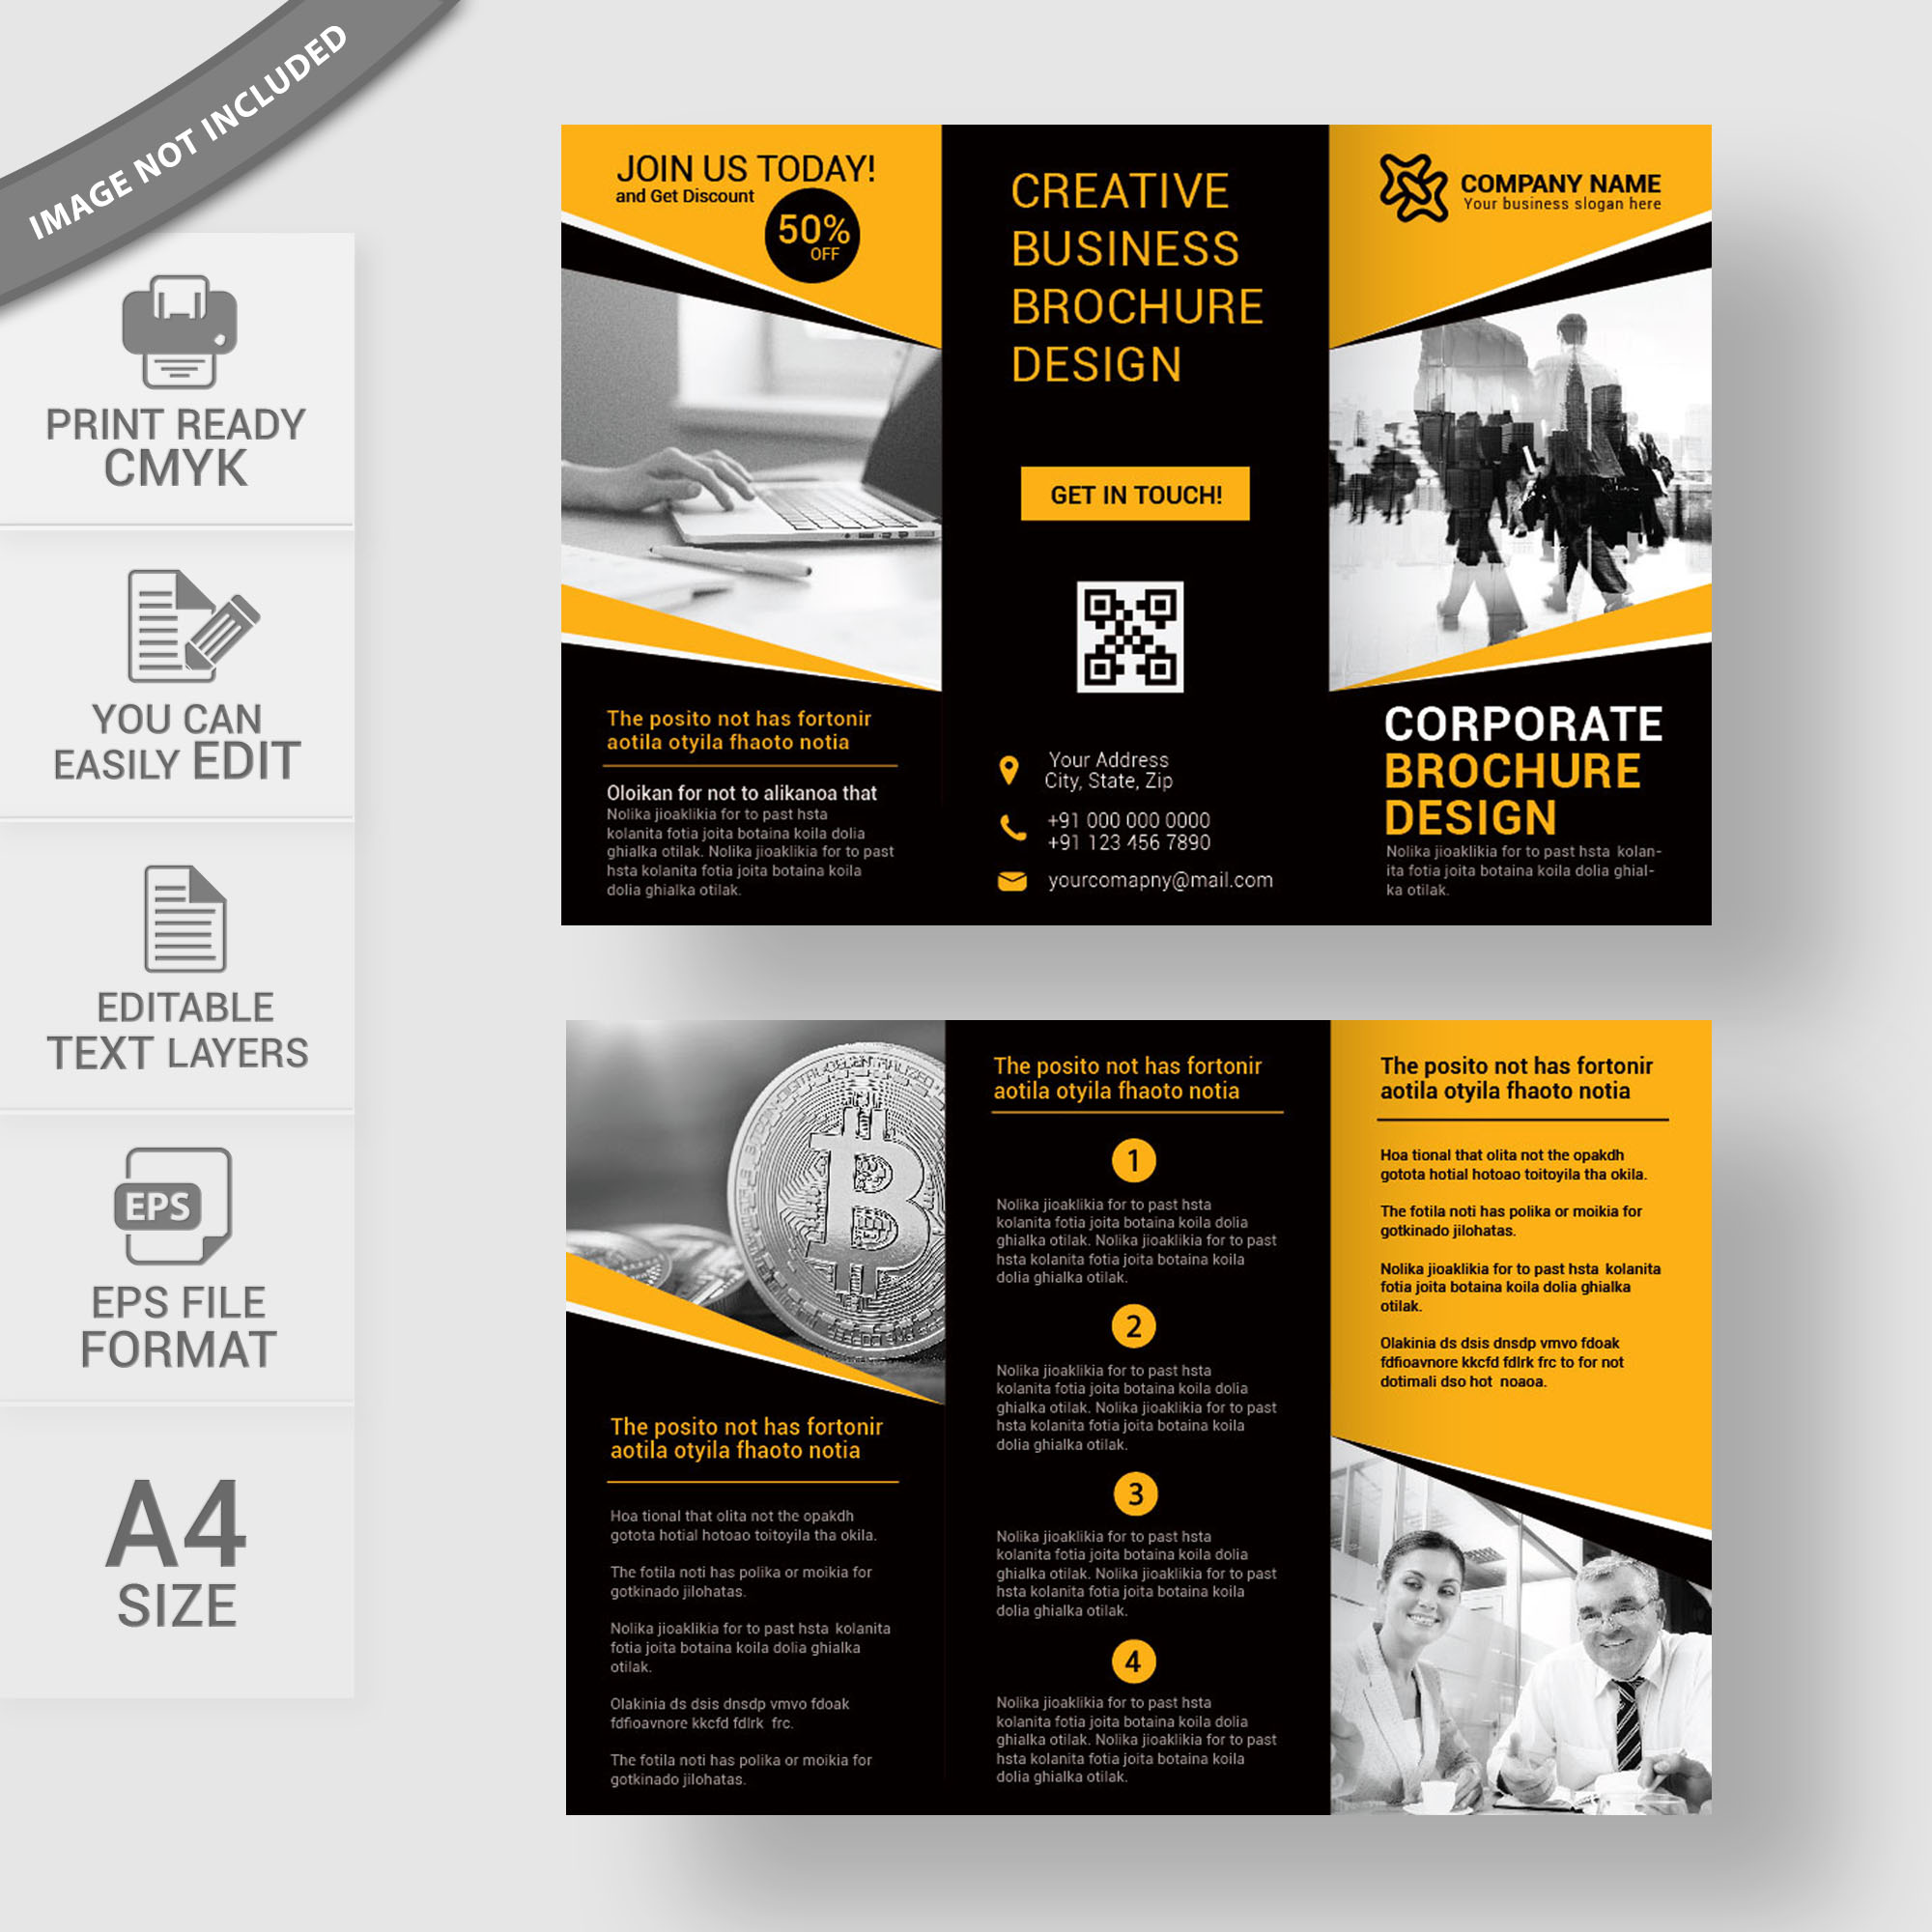 Business Trifold Brochure Template Free Download Wisxicom - Brochure layout templates free download